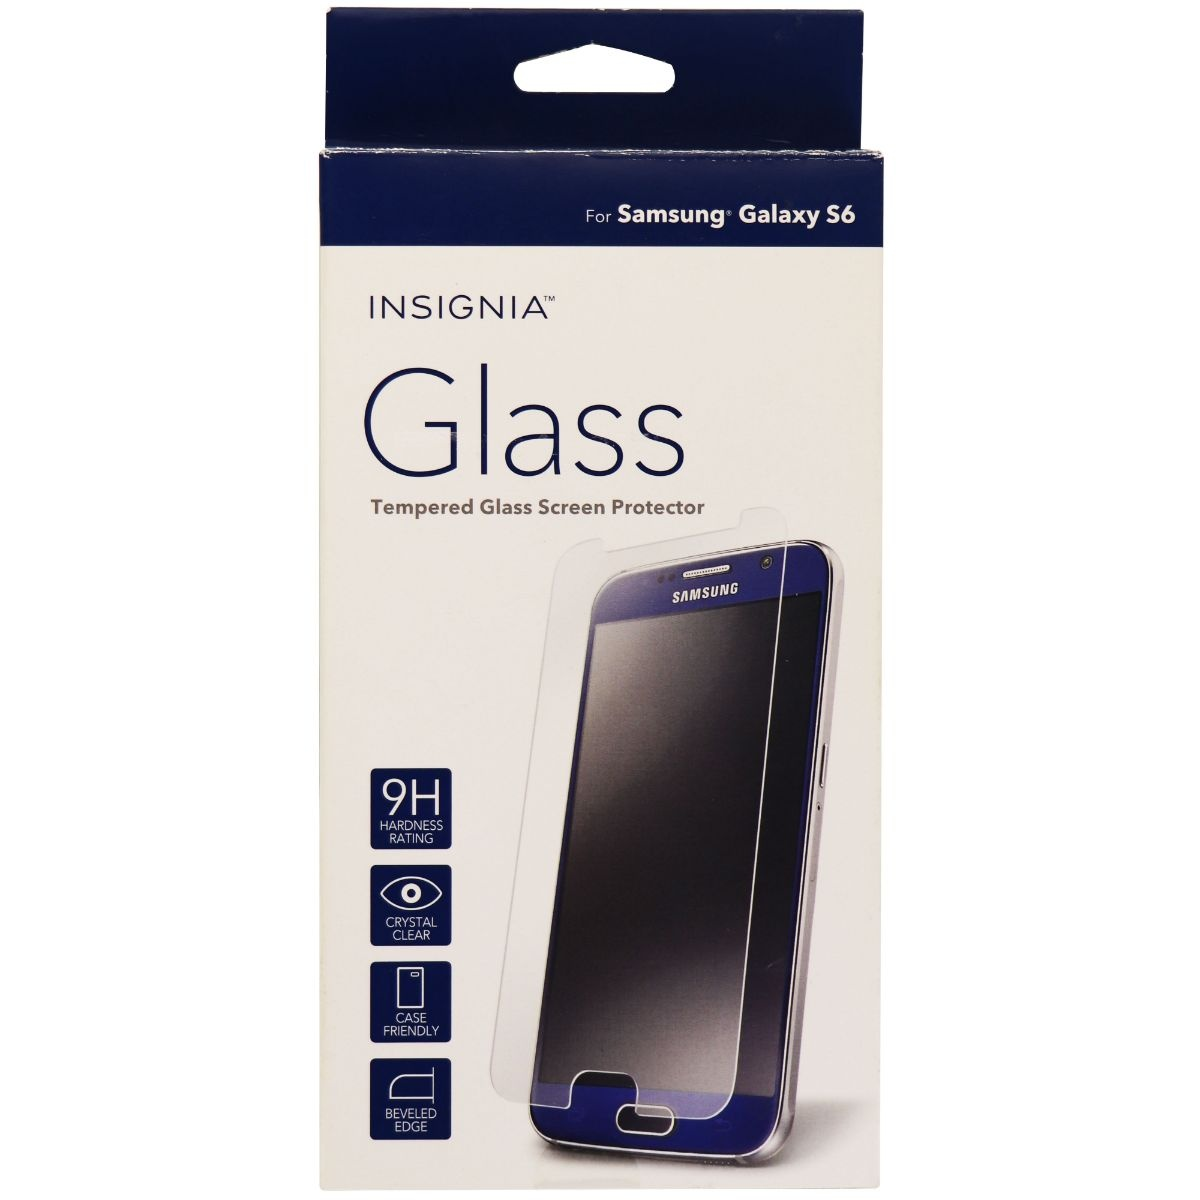 Insignia Tempered Glass Screen Protector for Samsung Galaxy S6 - Clear